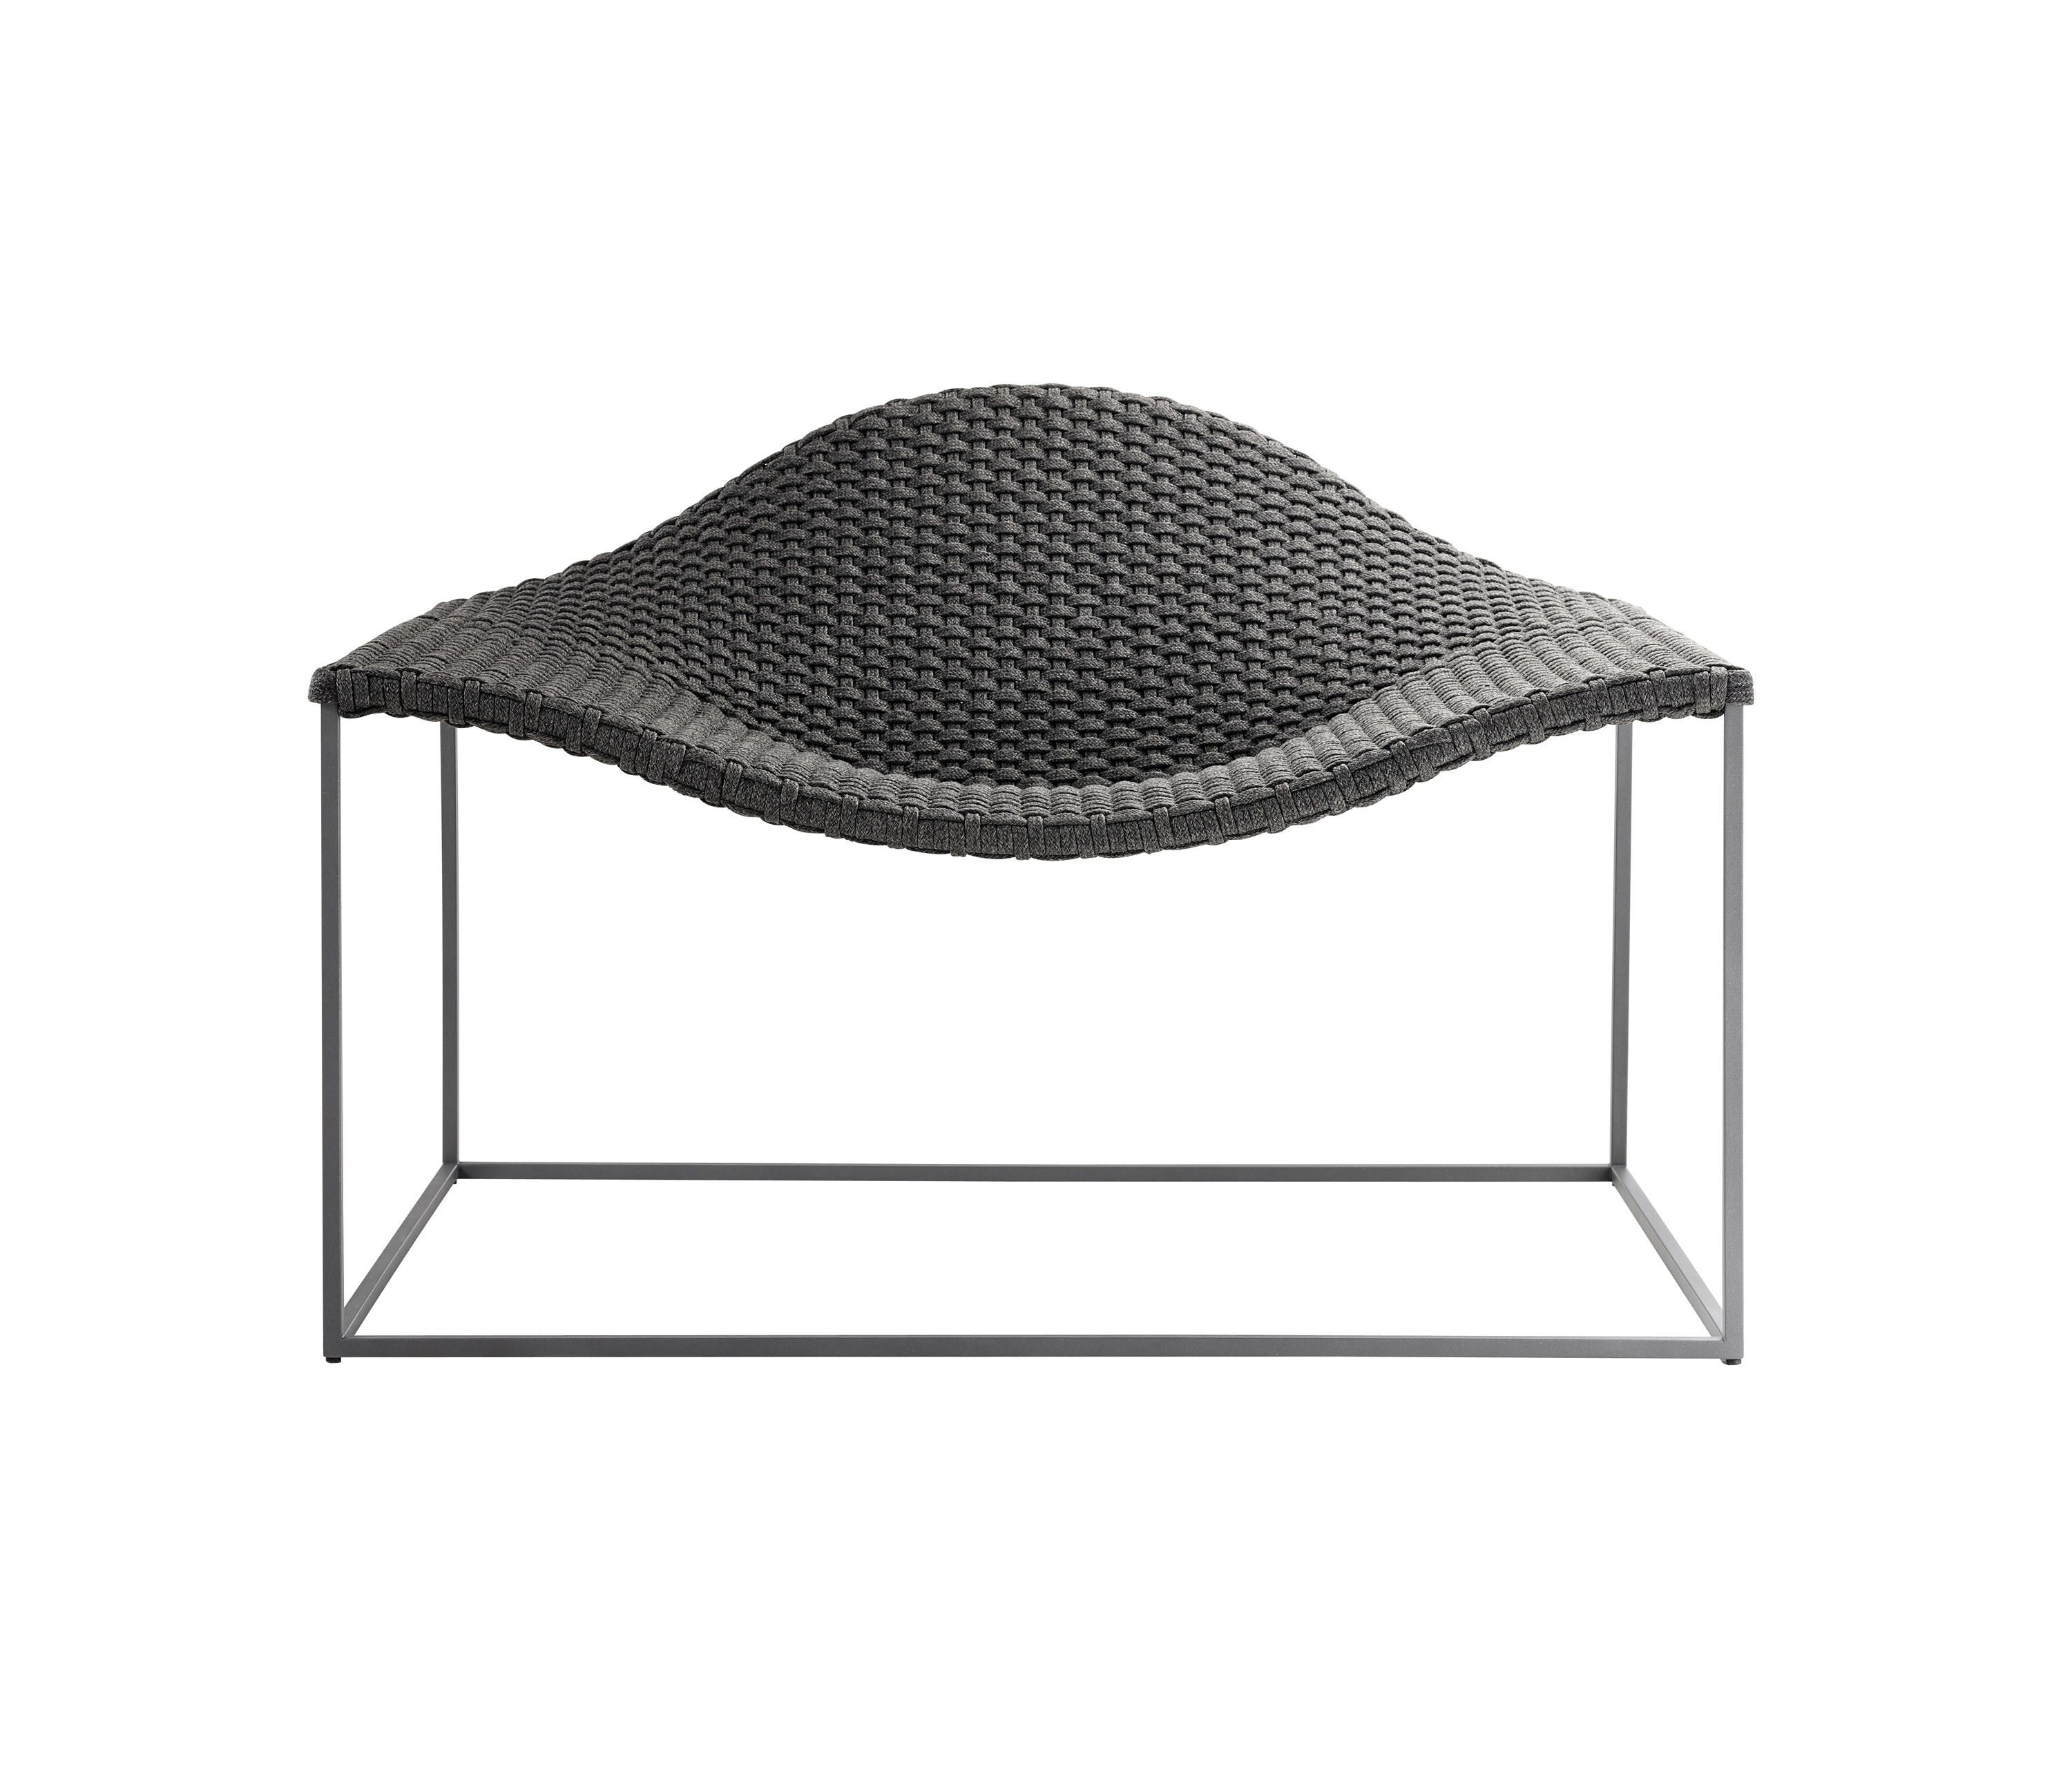 Wave Lounge Chair Designer Garden Armchairs From Solpuri All